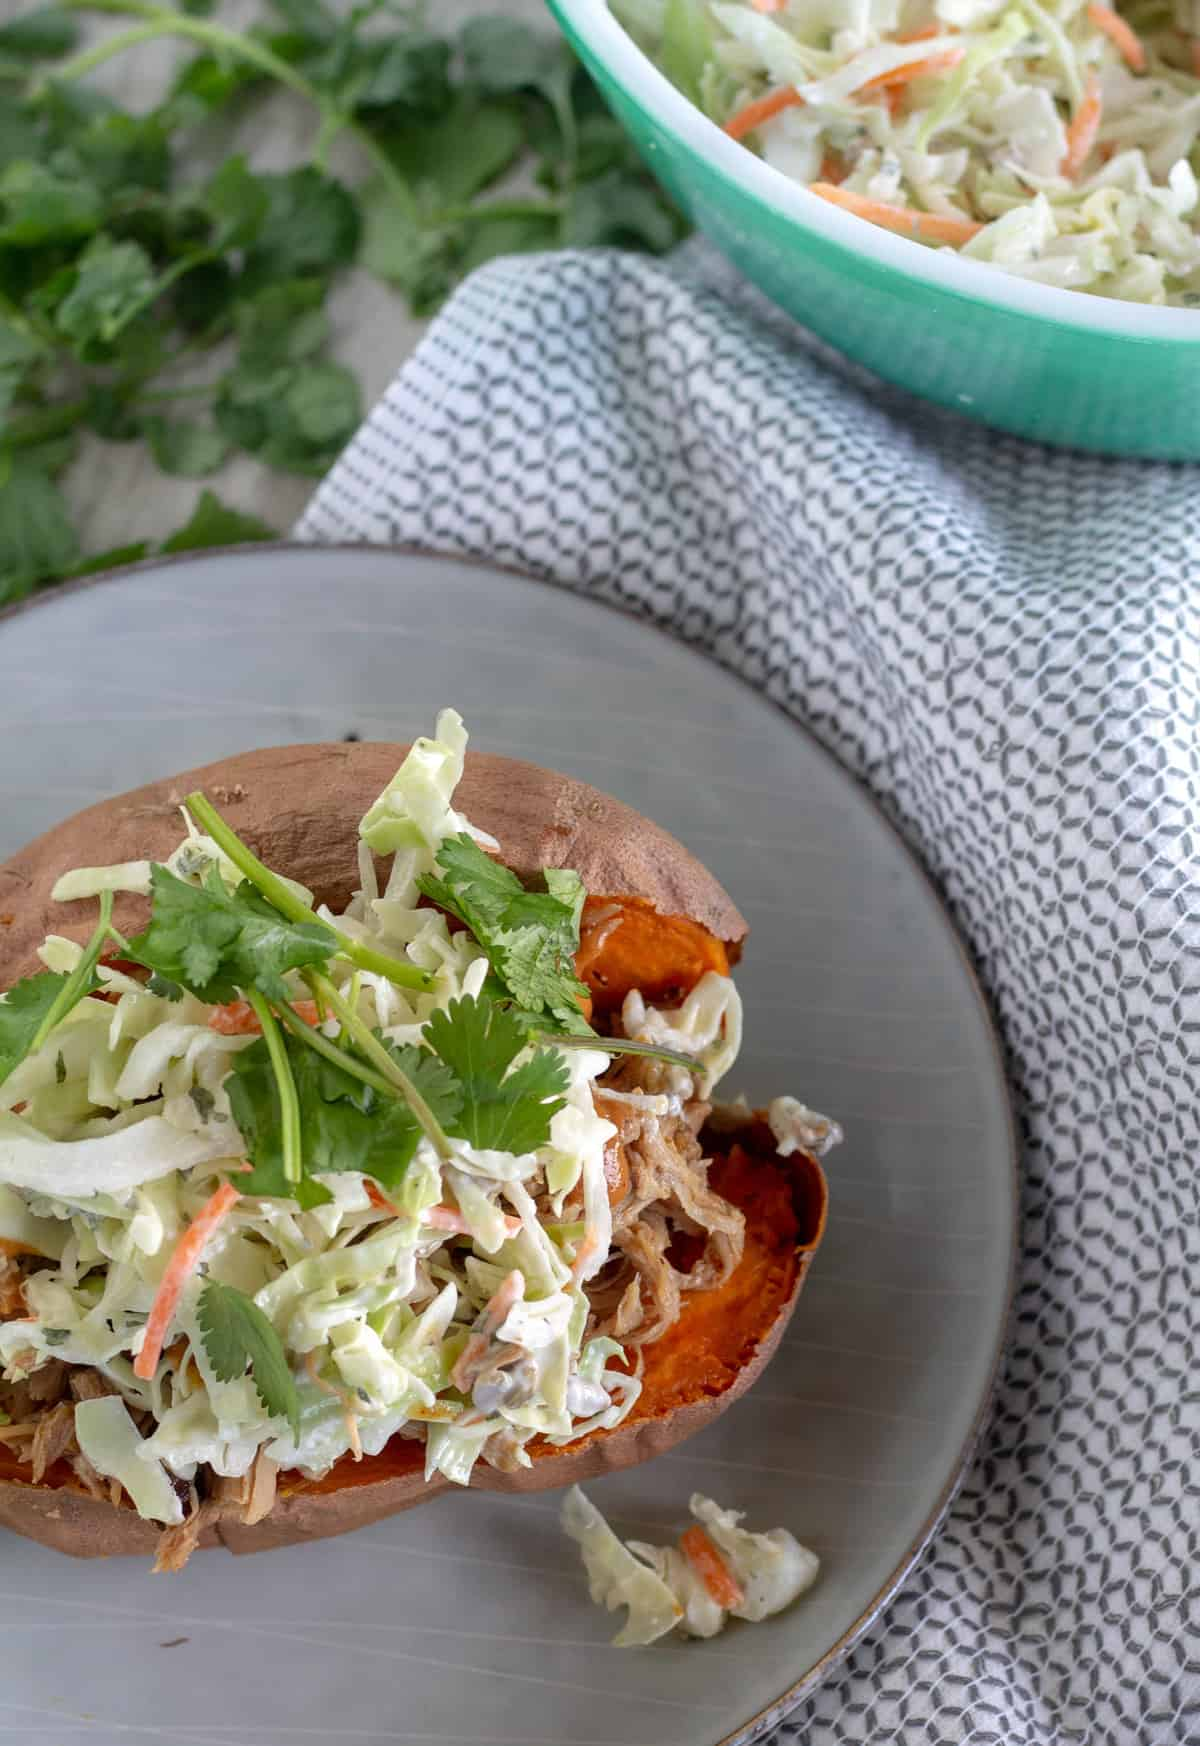 Overhead shot of sweet potato stuffed with pulled pork and slaw